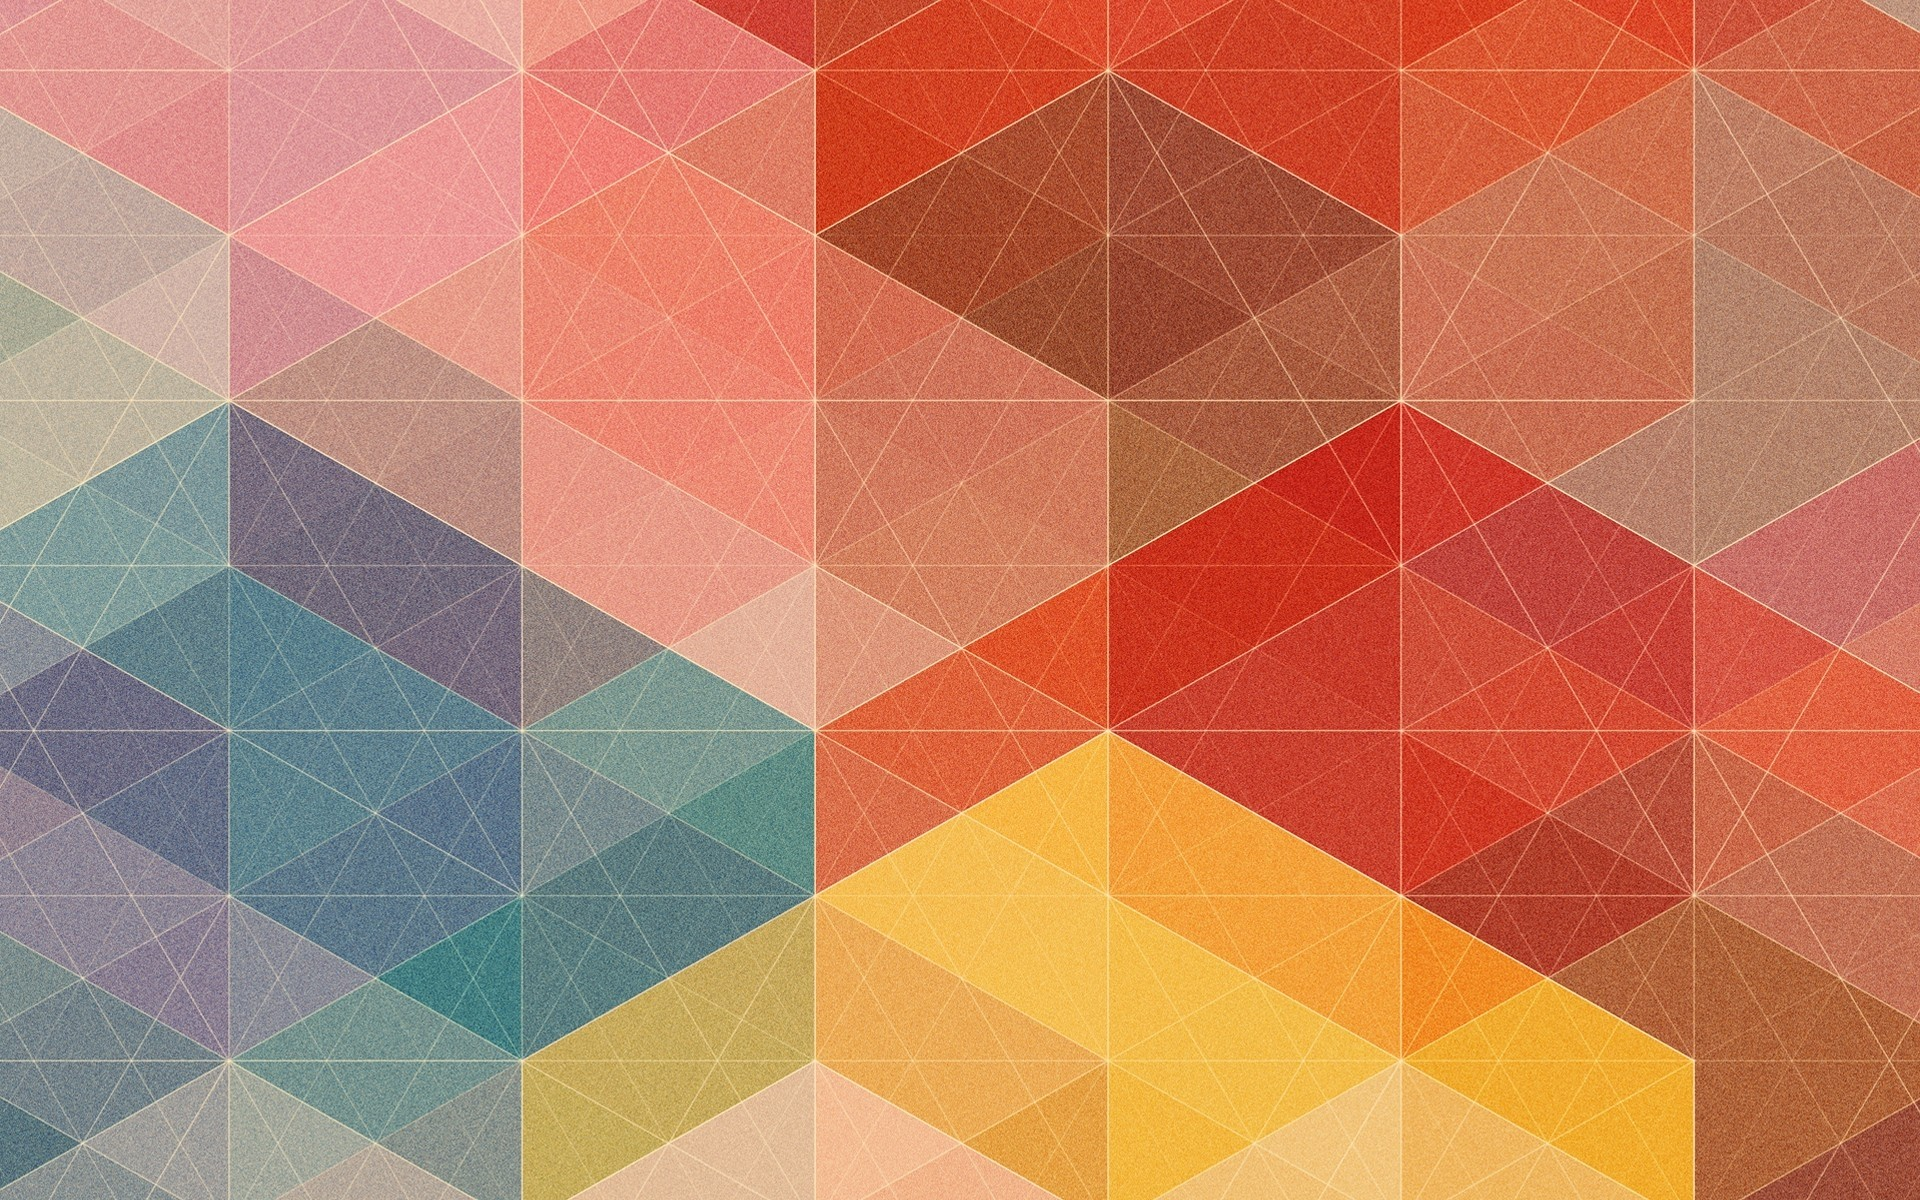 Geometric Shapes Design Wallpaper Wallpapers. dental office designs.  orthodontic office design. home office